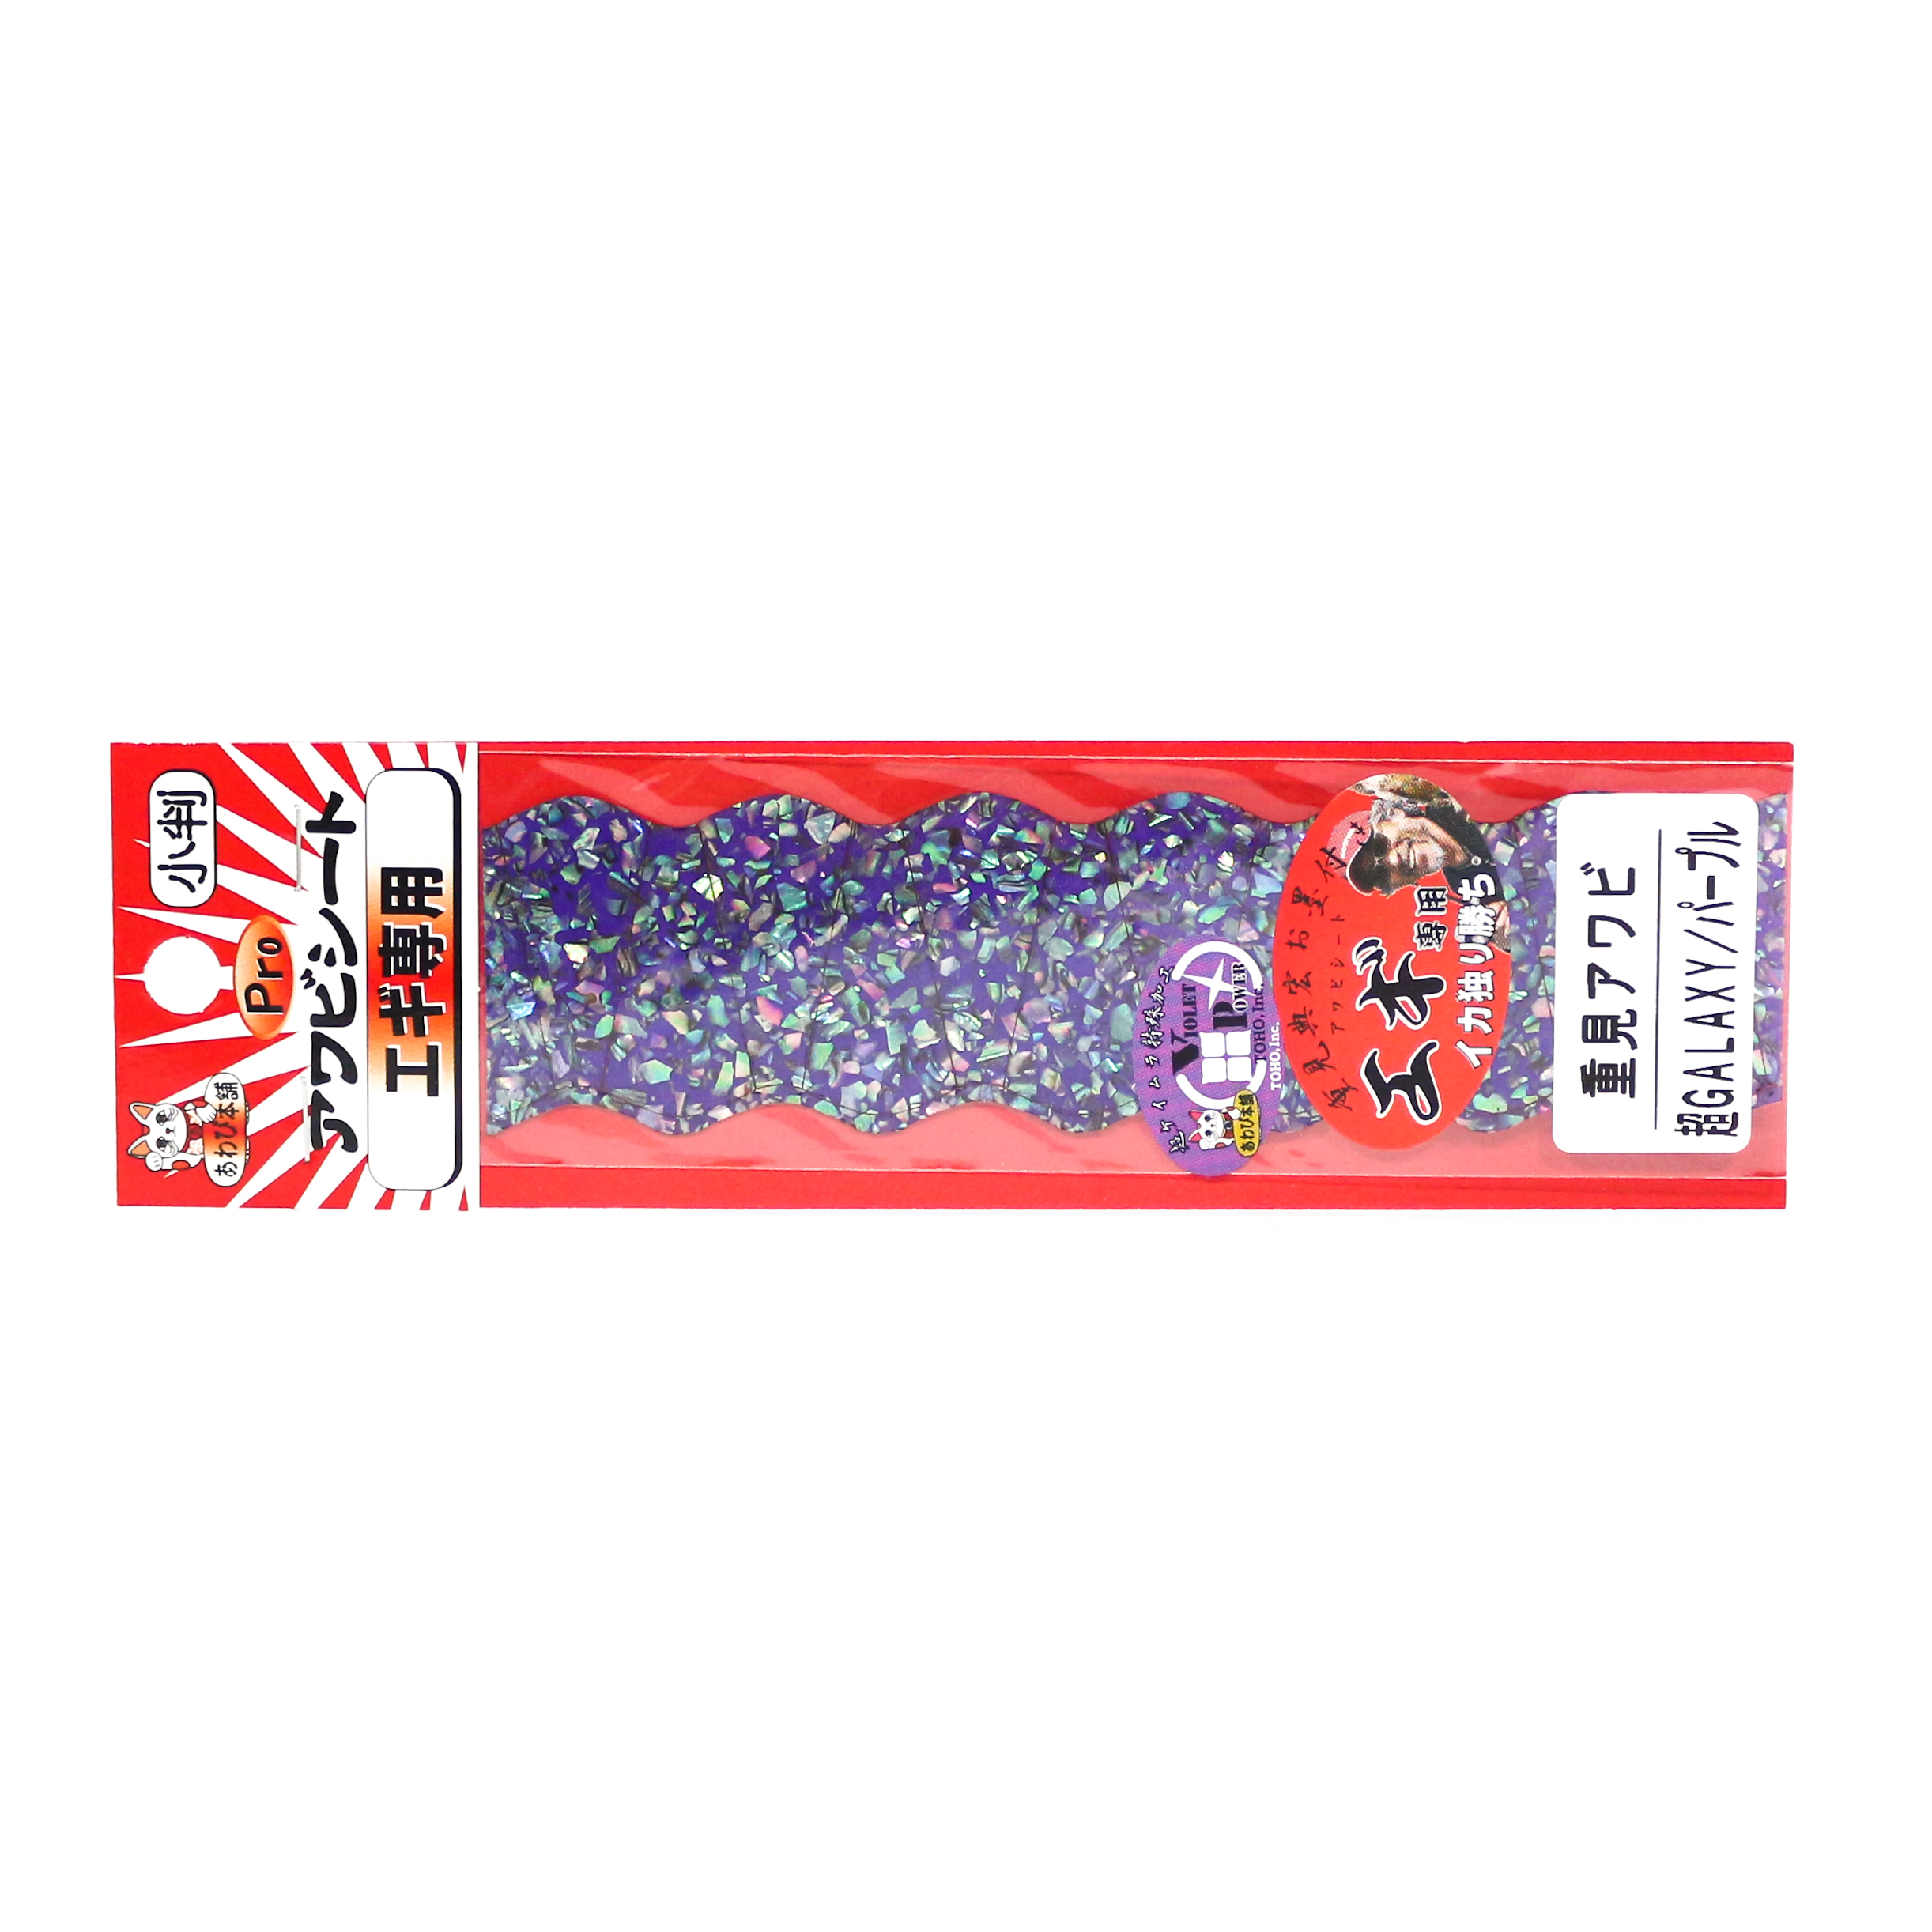 Awabi Honpo Pro Awabi Sheet Shigemi Size S 40 x 140 mm Galaxy/Purple (3146)